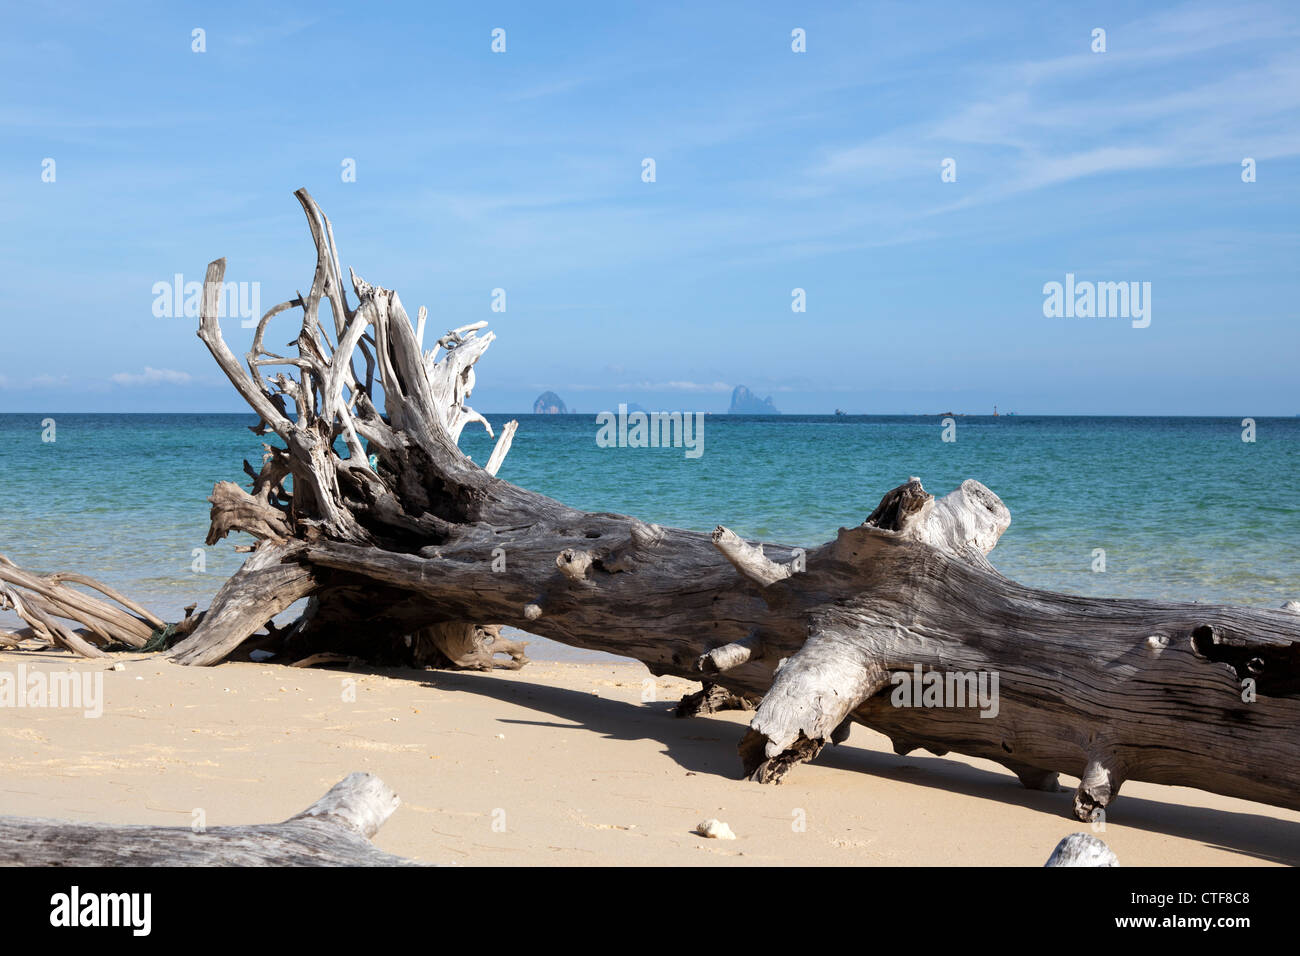 A natural scenic image taken at Bulon island: the bole of a casuarina uprooted during a tempest and left on the - Stock Image